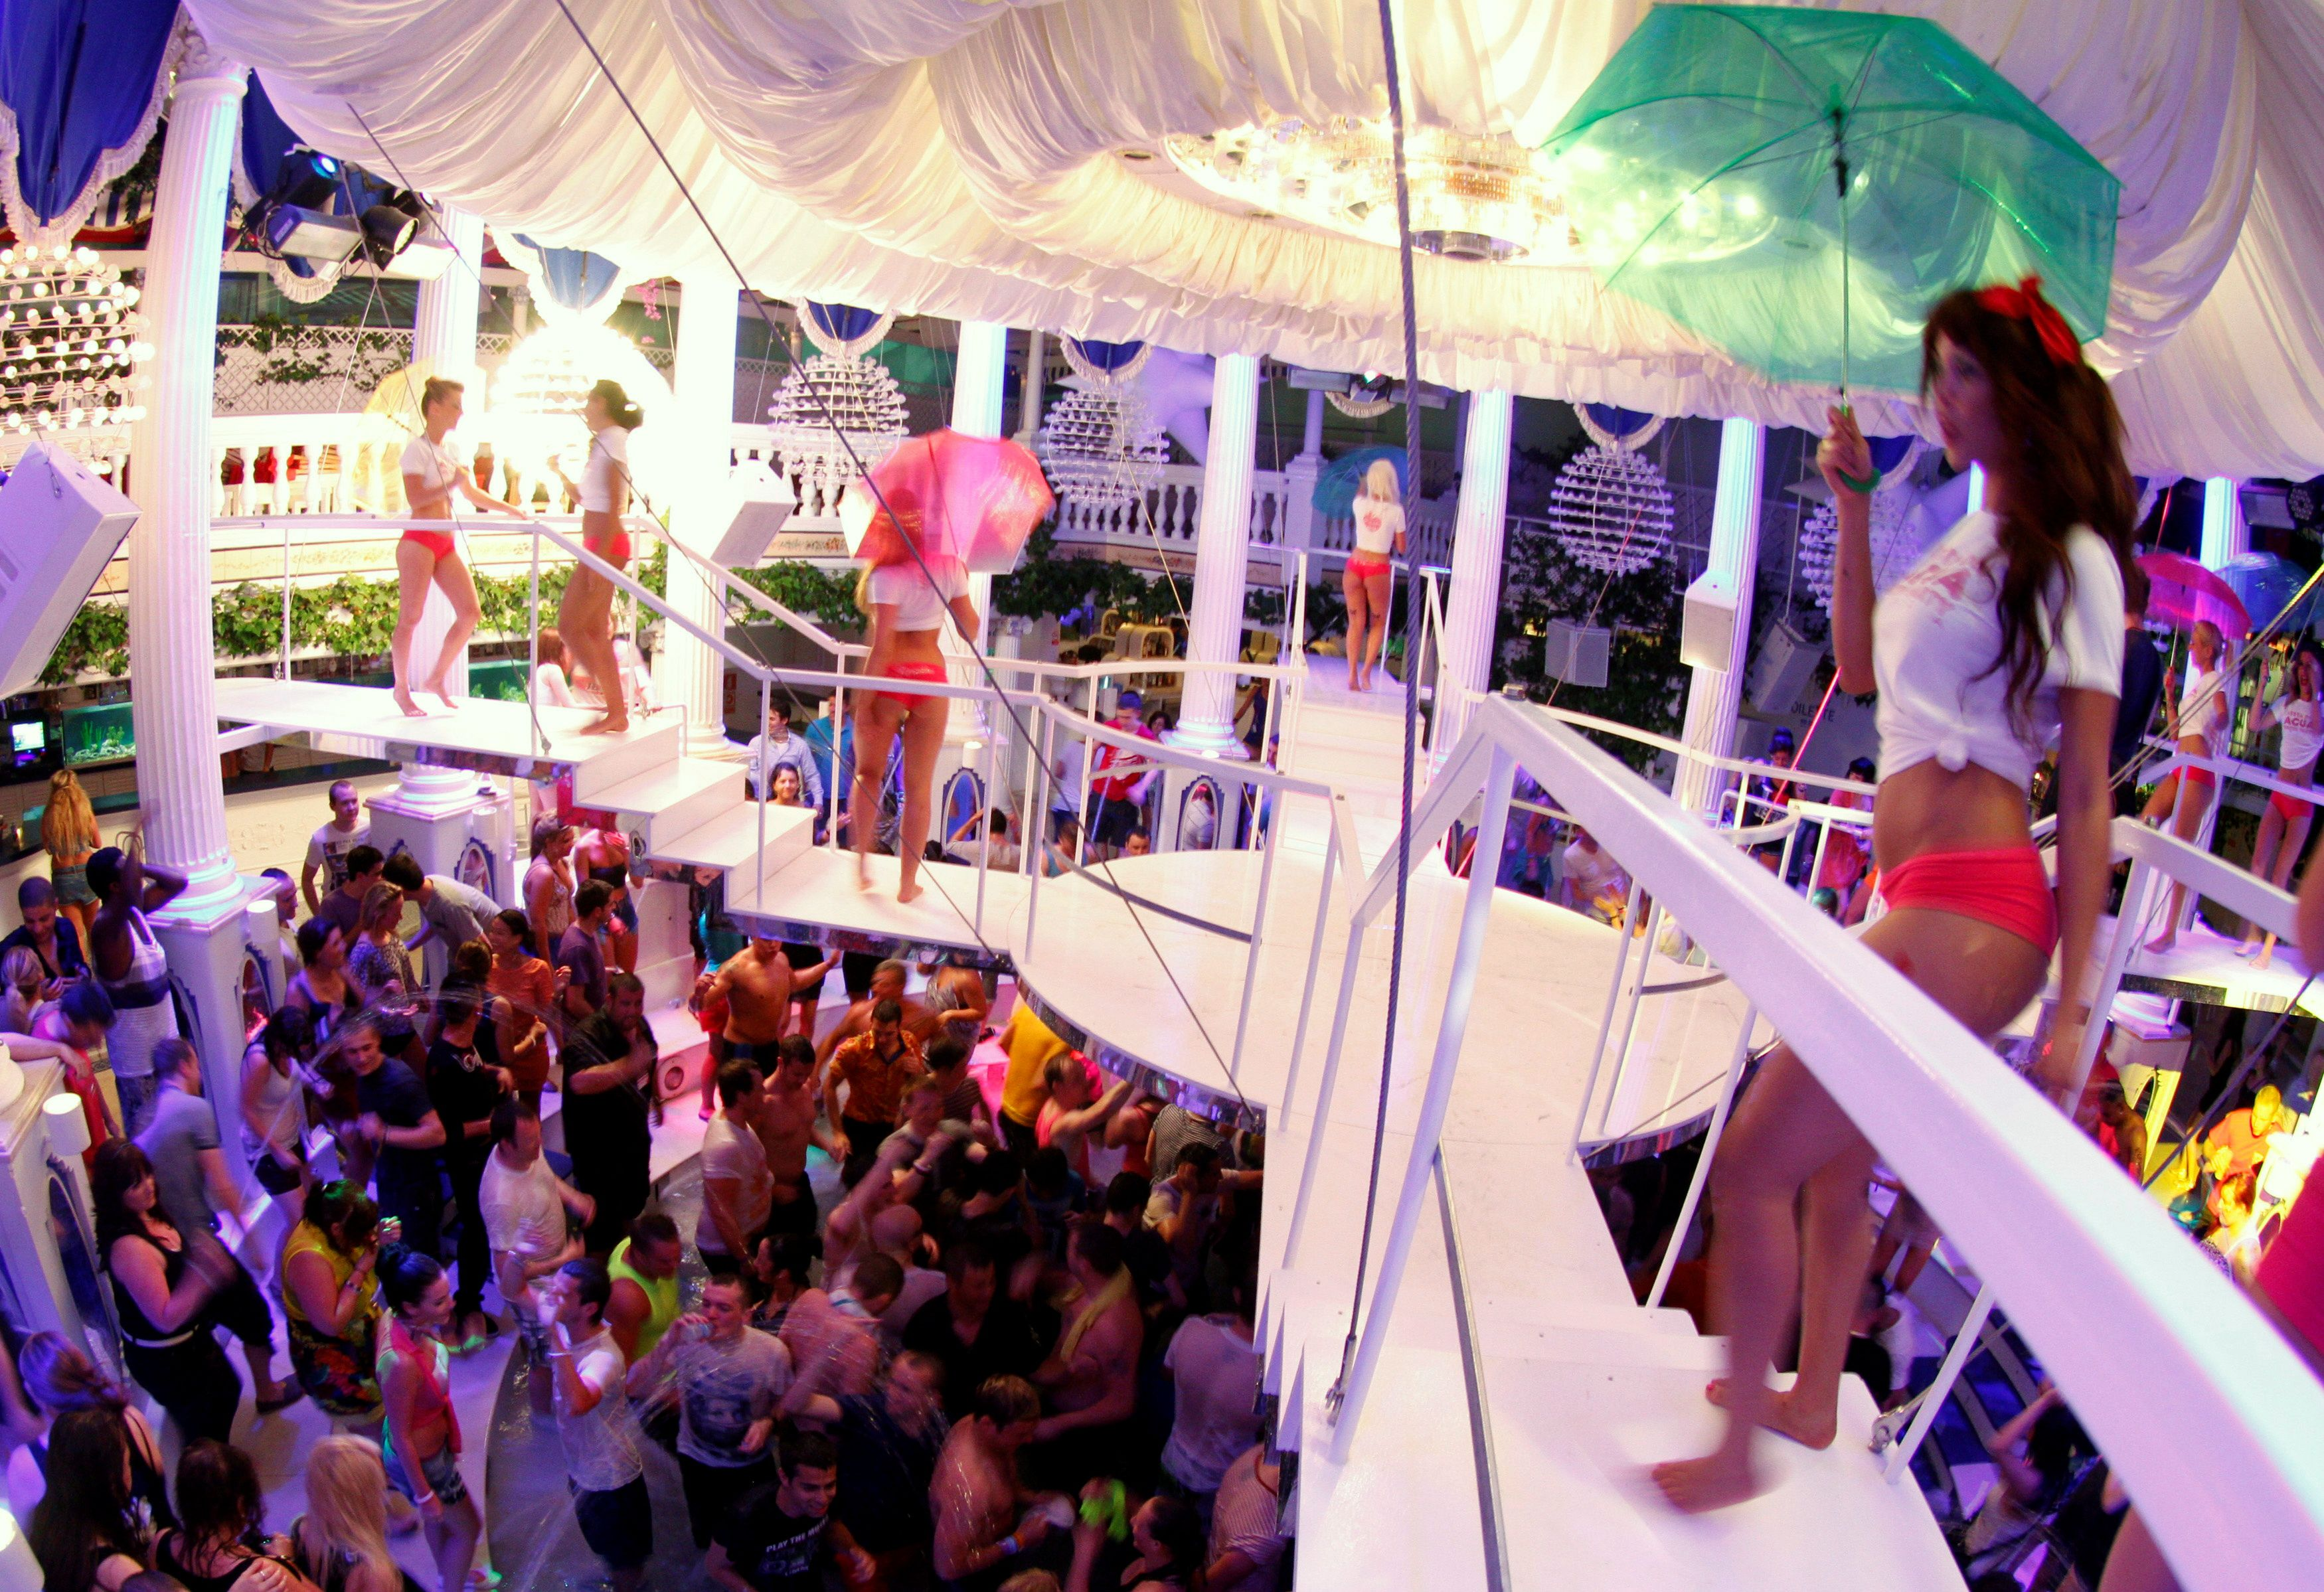 Dancers perform over the crowd during a water party inside Paradis disco in San Antonio in the Spanish Balearic island of Ibiza early June 2, 2012. REUTERS/Enrique Calvo/File Photo